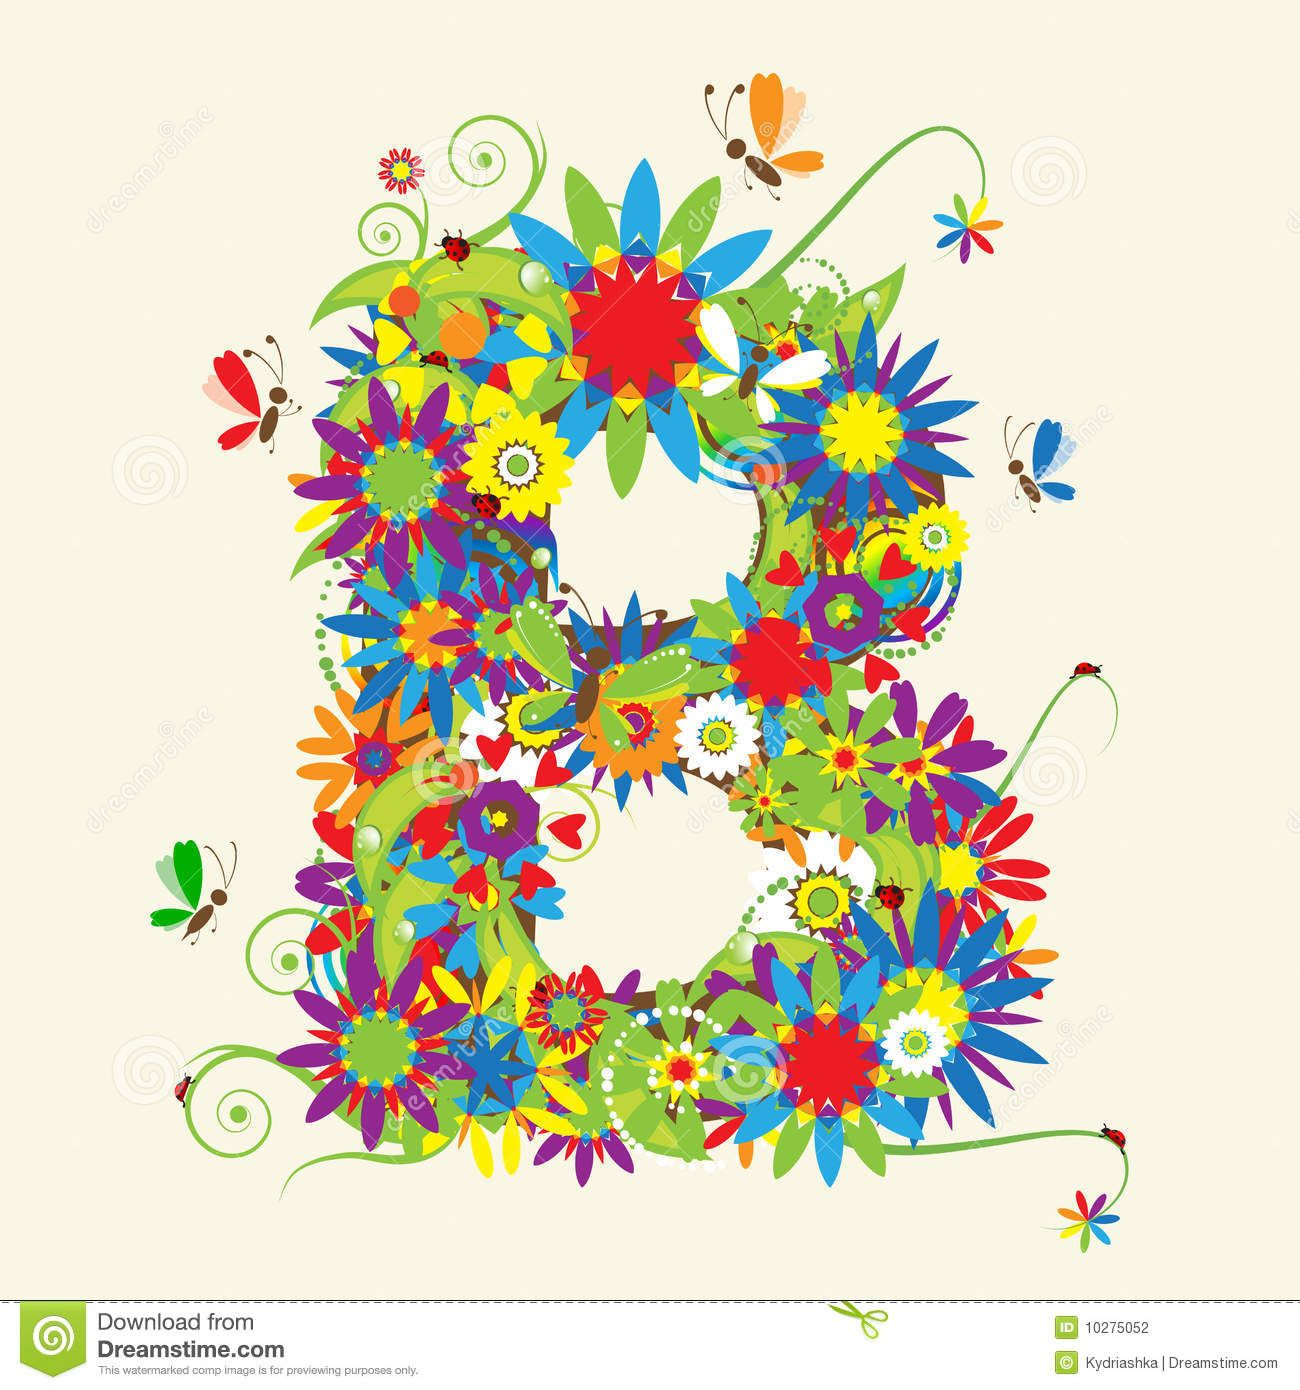 17 Best images about Letter Design on Pinterest   Royalty free ...